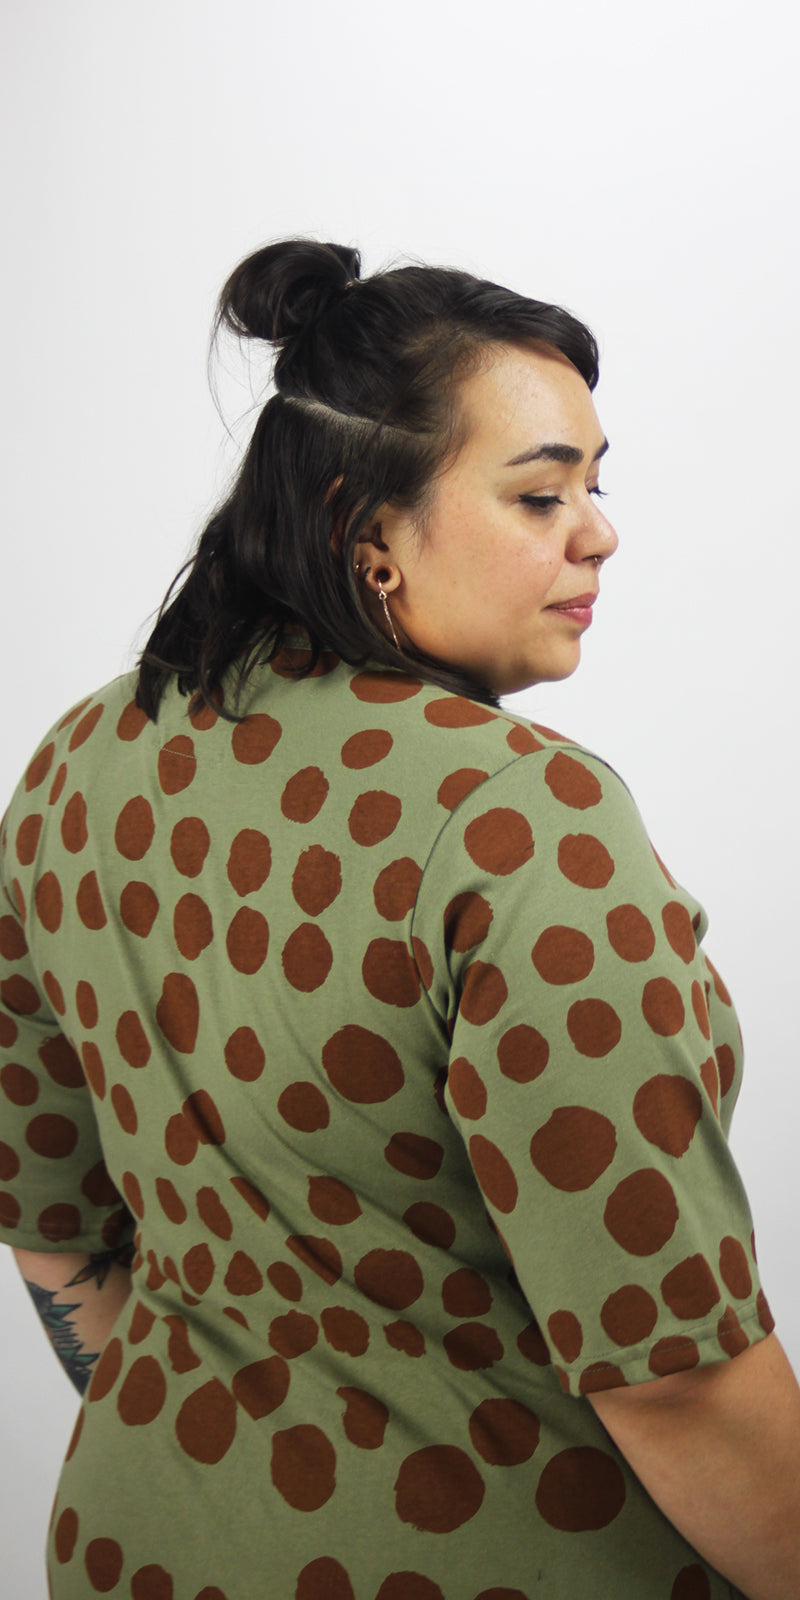 Round neck olive green pocket dress with dark brown spots and sleeves